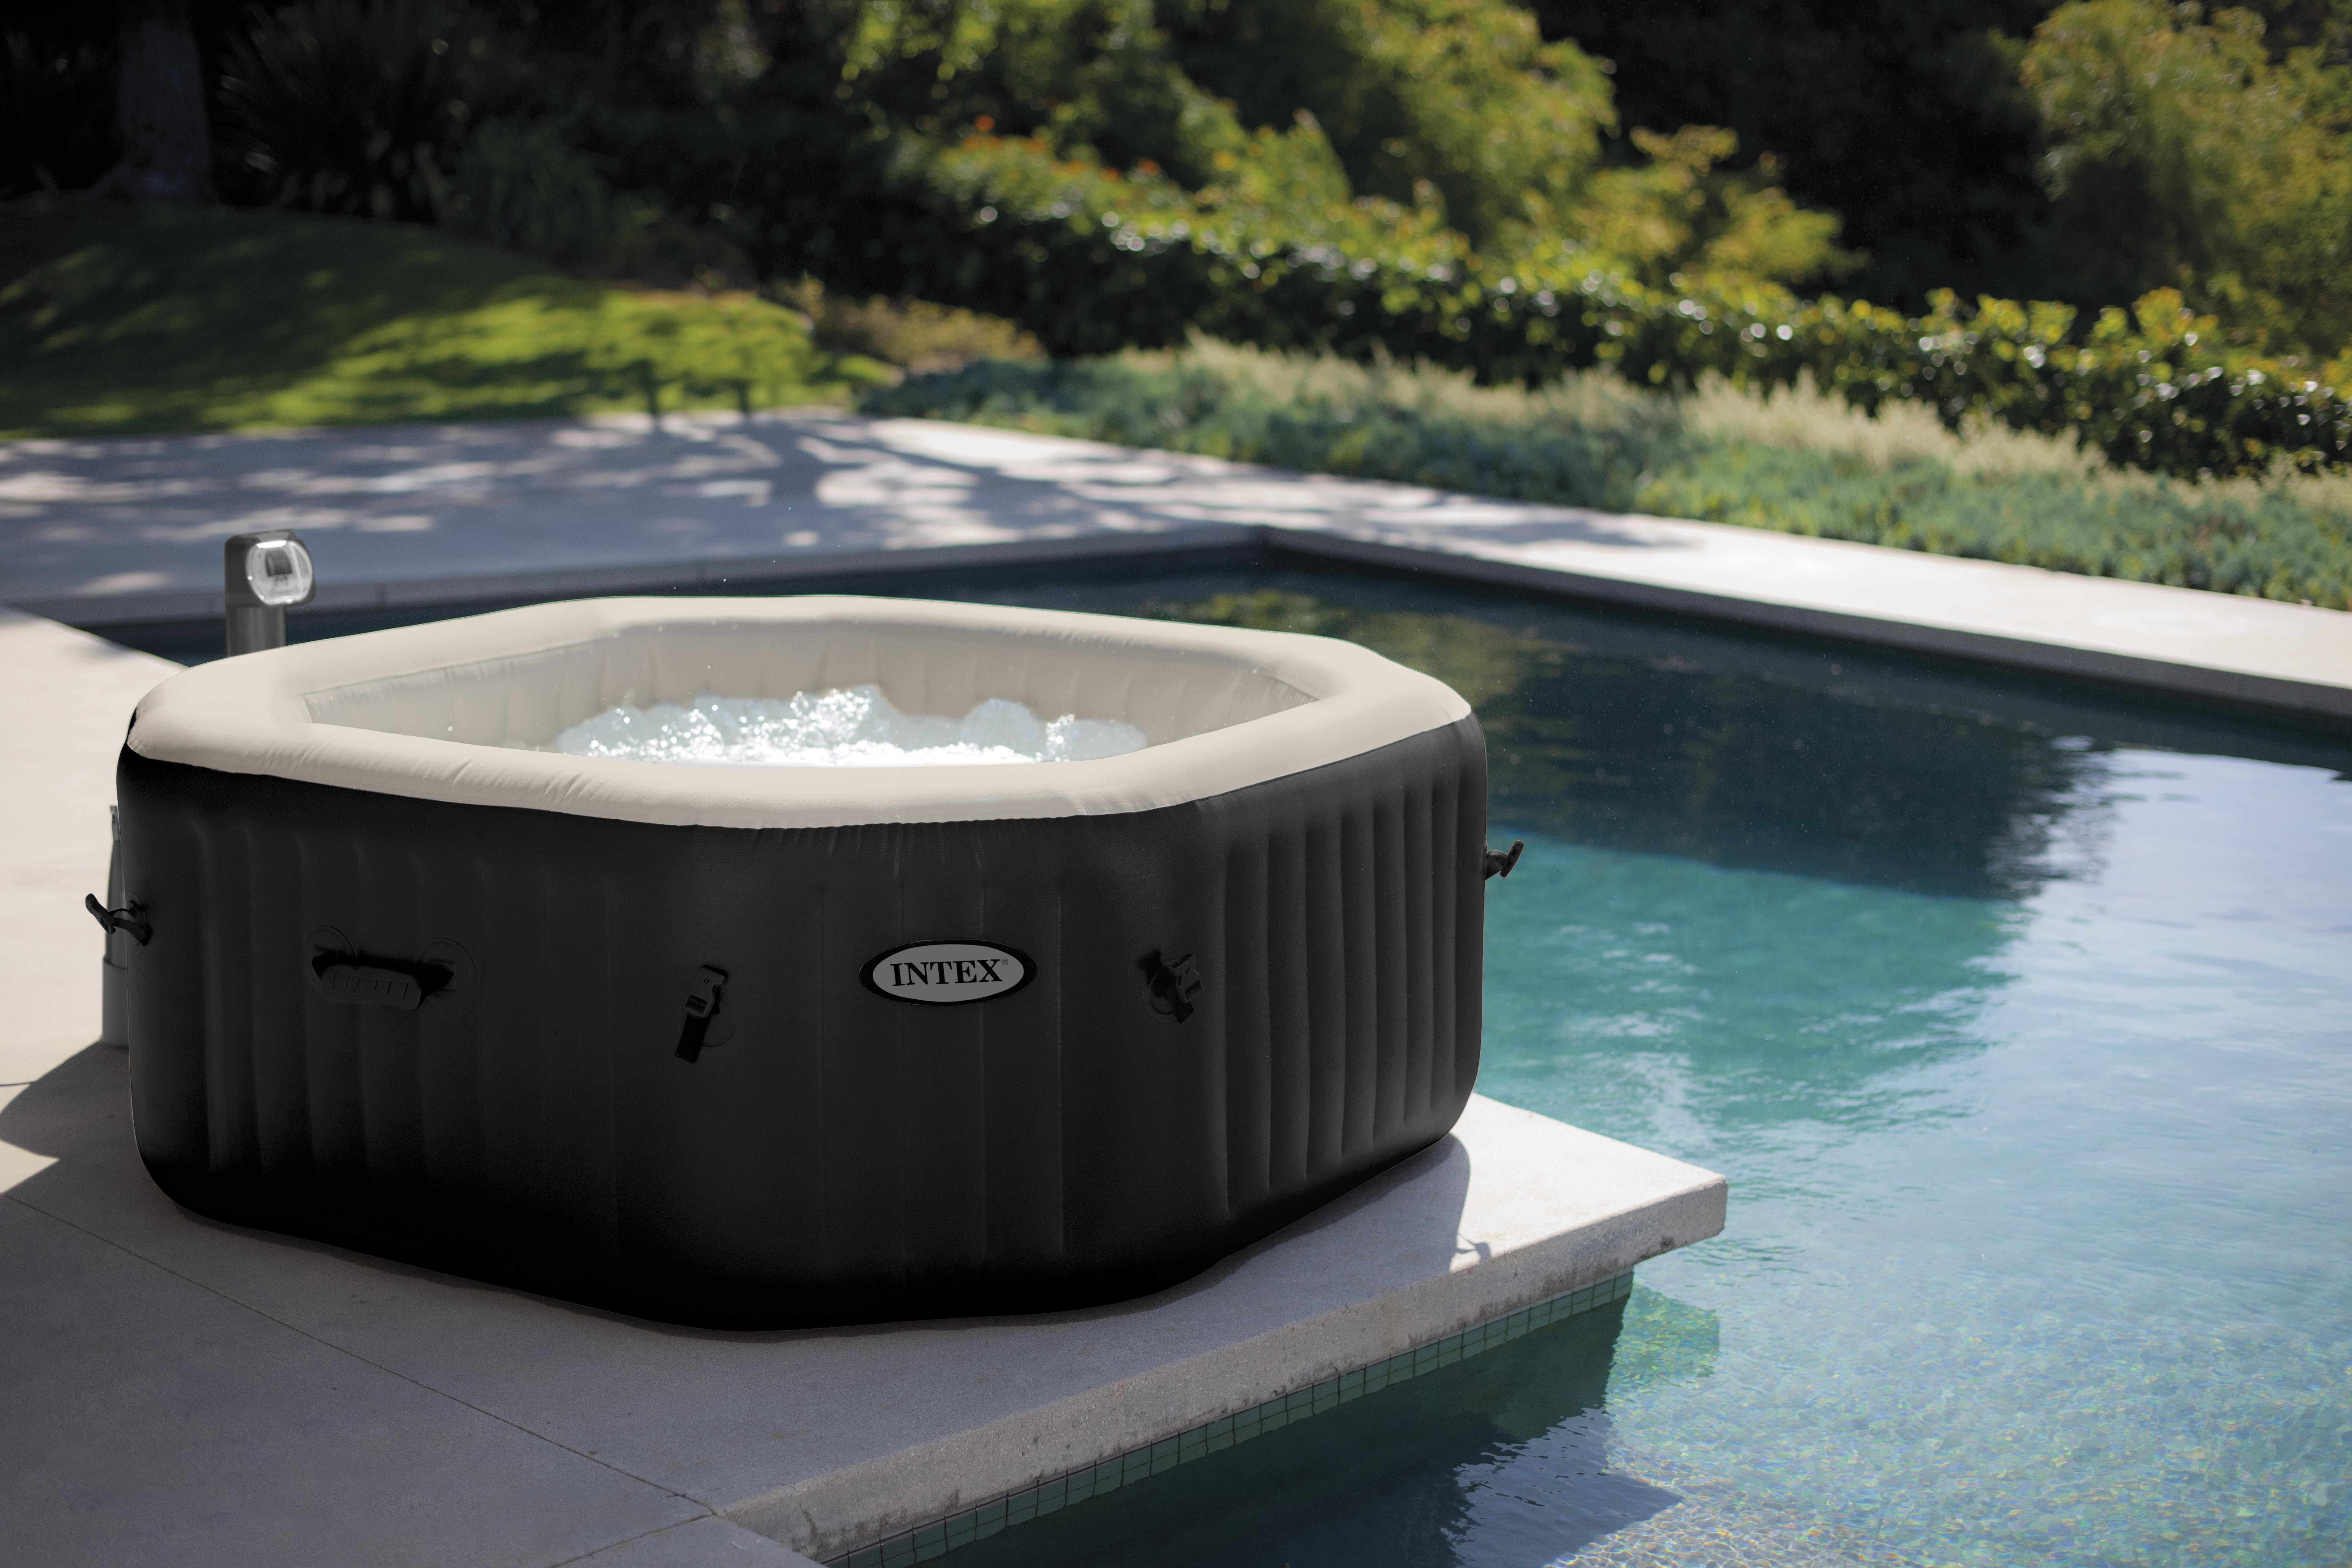 Jacuzzi Pool Deluxe Intex 28456 Bubble Jet Deluxe Inflatable Hot Tub Spa Full